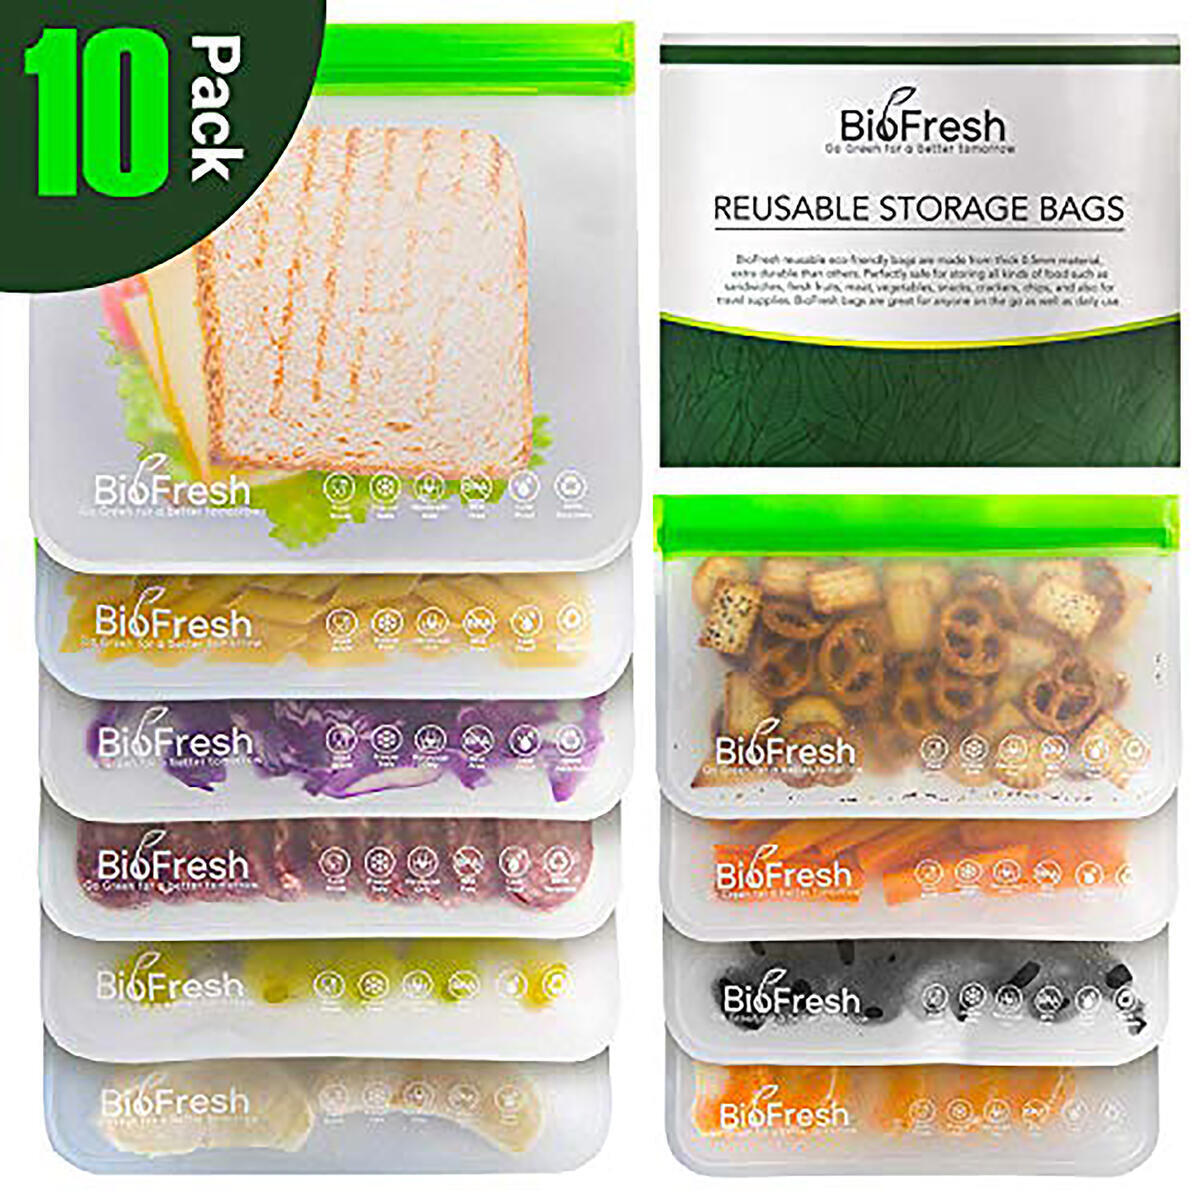 Reusable Sandwich Bags - 10 Pack BPA Free Freezer Bags(4 Reusable Snack Bags + 6 Reusable Sandwich Bags) Leakproof Silicone and Plastic Free PEVA Bags For Snack Meat Sandwich Lunch Food Travel